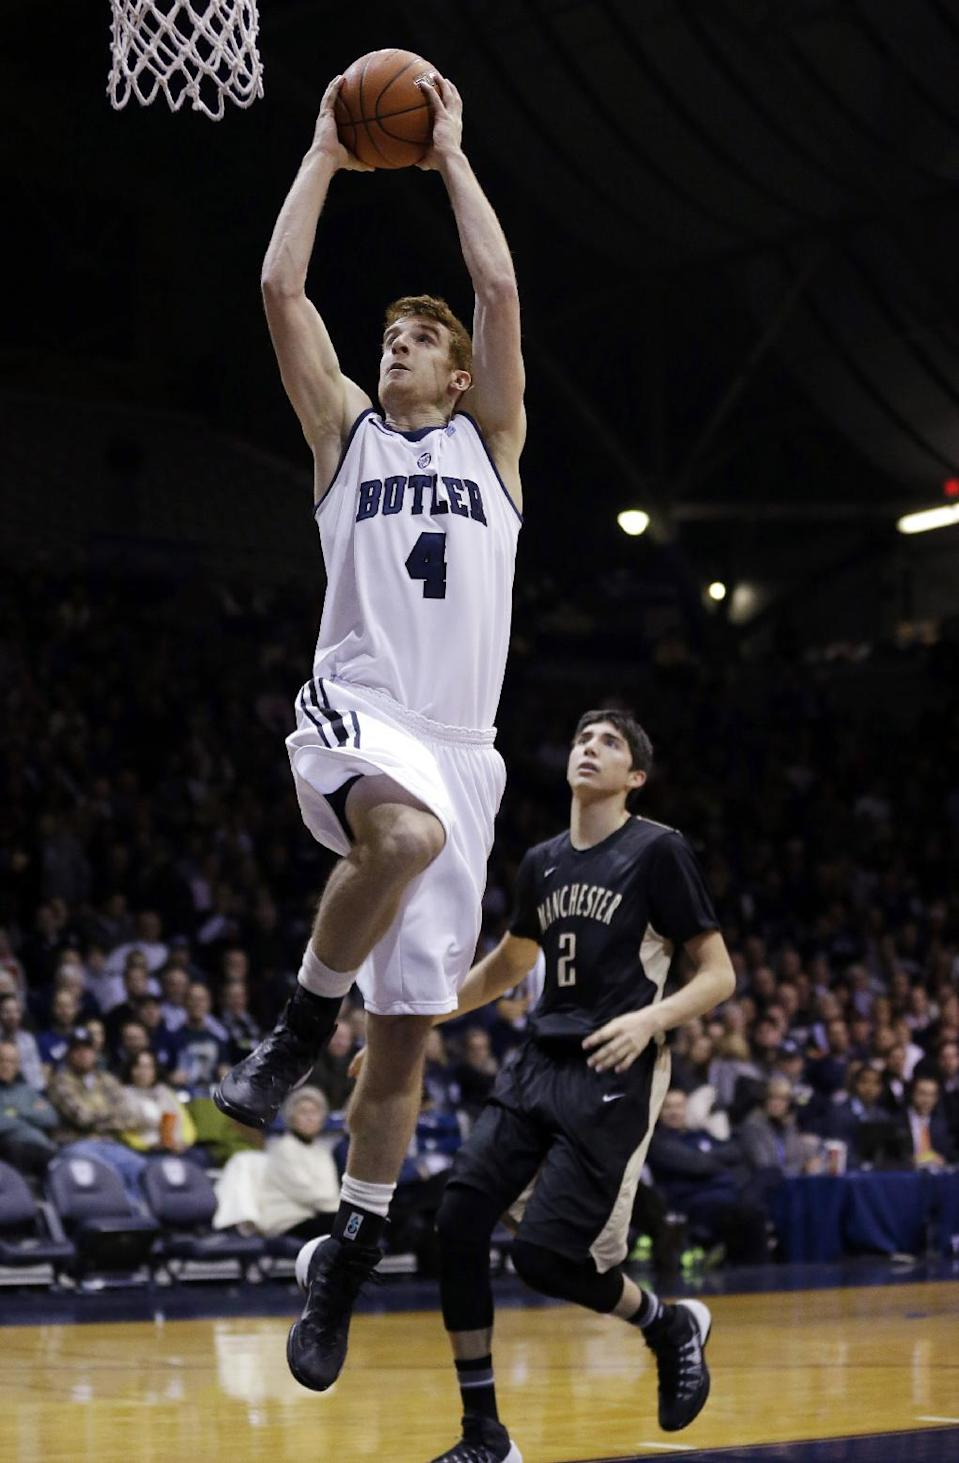 Manchester guard Chase Casteel (4) gets a bucket in front of Manchester guard Blake Brouwer in the first half of an NCAA college basketball game in Indianapolis, Monday, Dec. 9, 2013. (AP Photo/Michael Conroy)